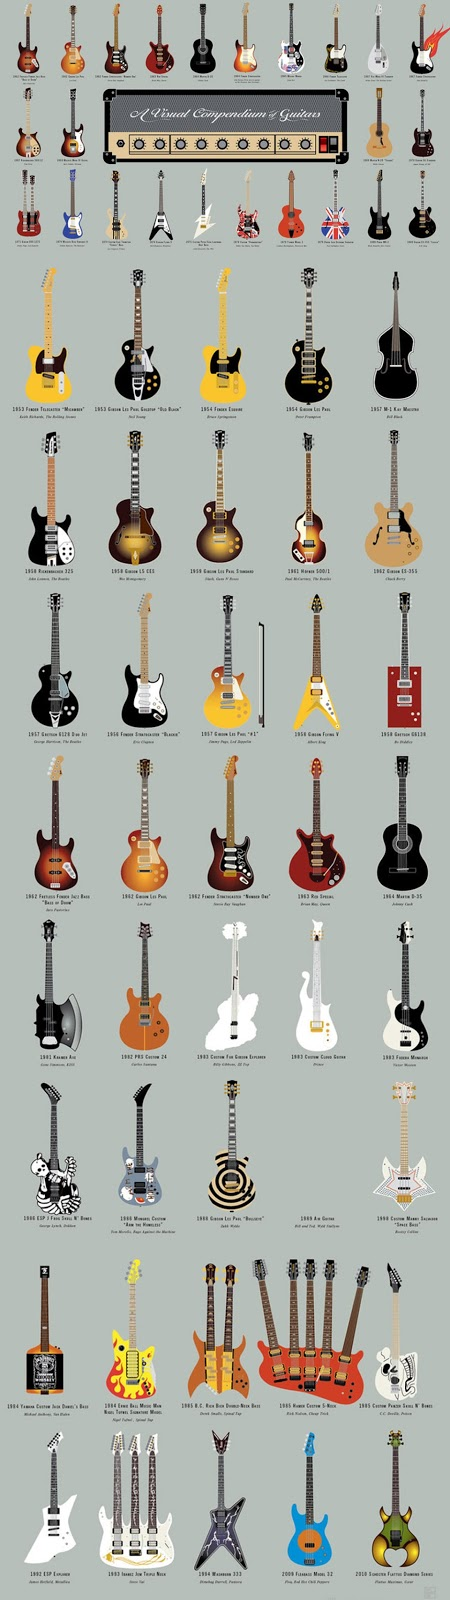 A Visual Compendium of Guitars - Infographic